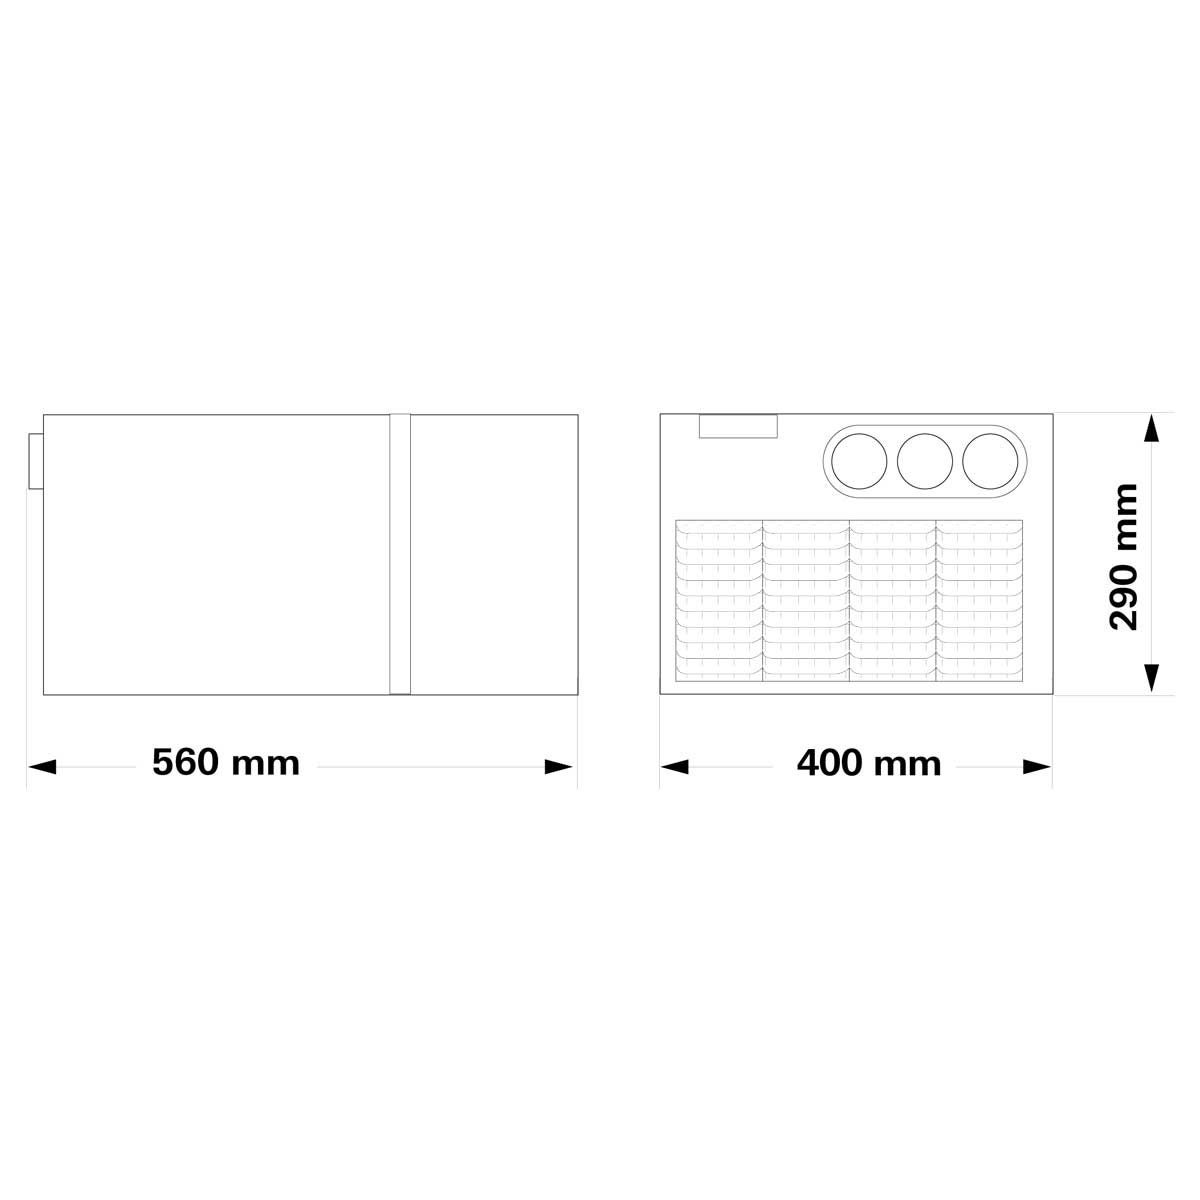 Truma Saphir Compact Air Conditioning Storage Box System Up to 5.5m Long Large